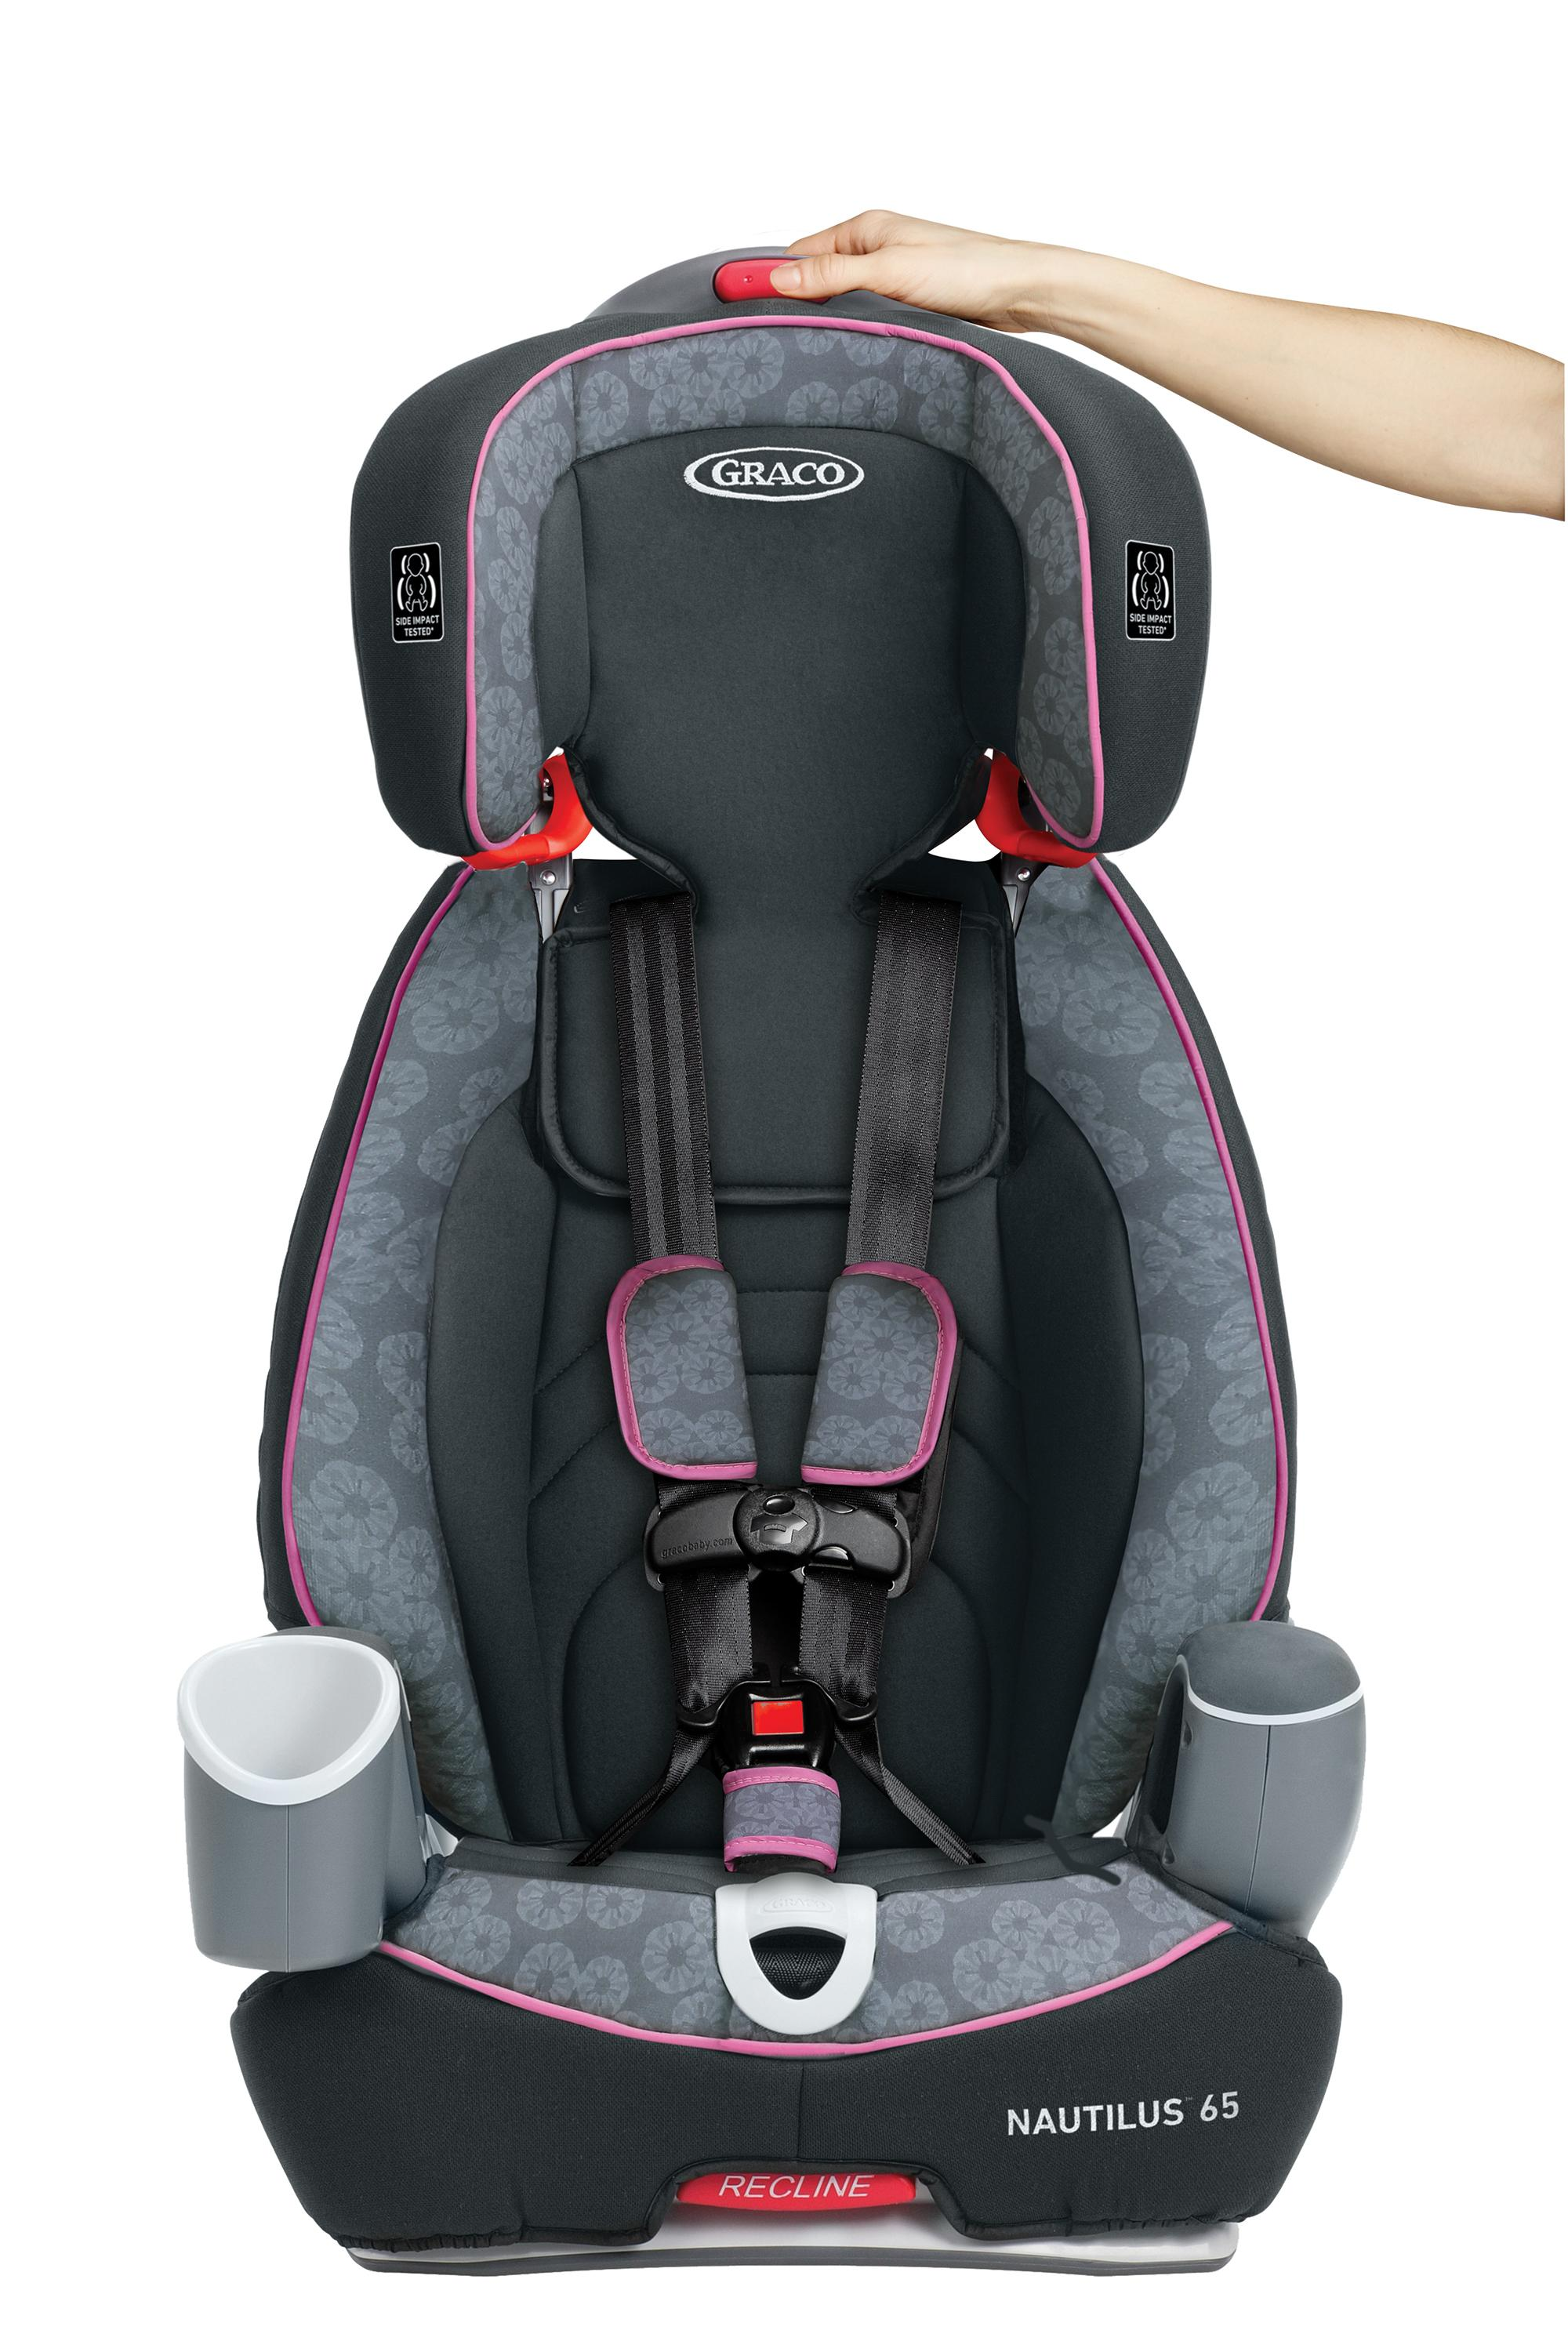 graco child seat instructions